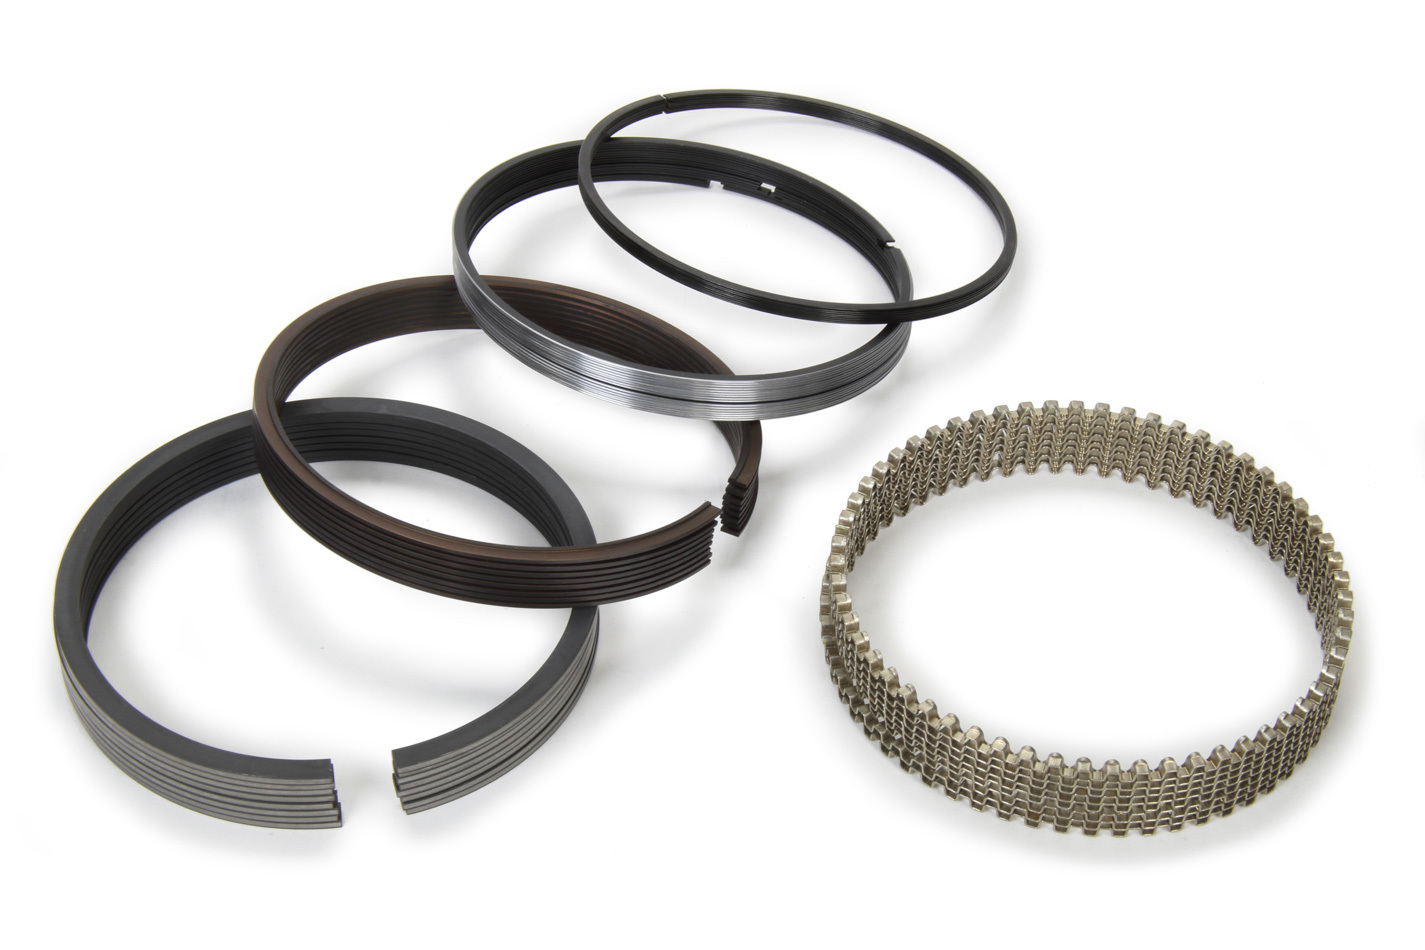 Total Seal CL6264-20 Piston Rings, Claimer, 4.020 in Bore, 2.0 x 1.5 x 4.0 mm Thick, Low Tension, Plasma Moly, 8 Cylinder, Kit